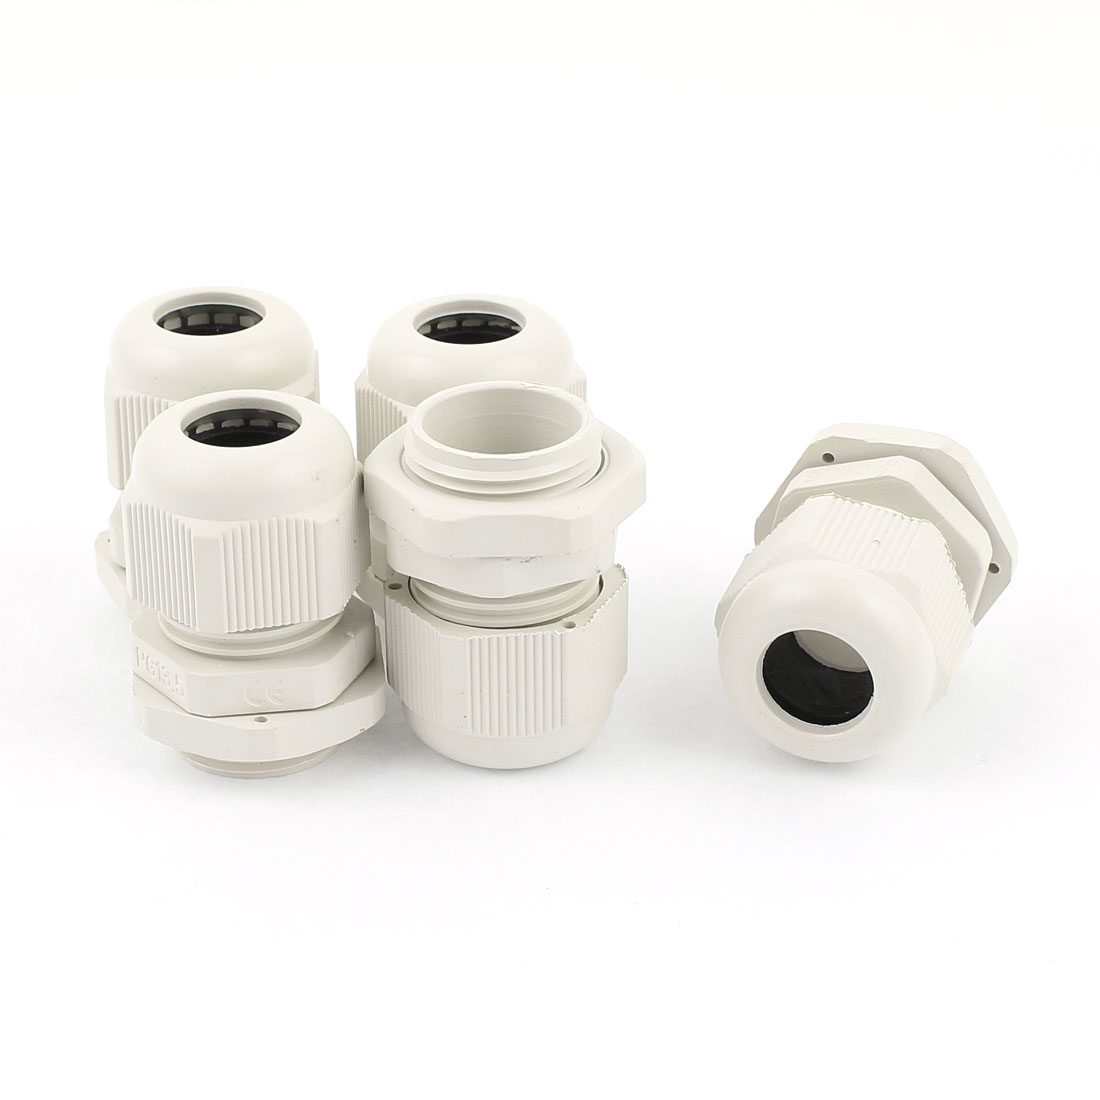 5 Pcs PG13.5 6mm to 12mm Waterproof Connector Adapter Plastic Cable Glands White